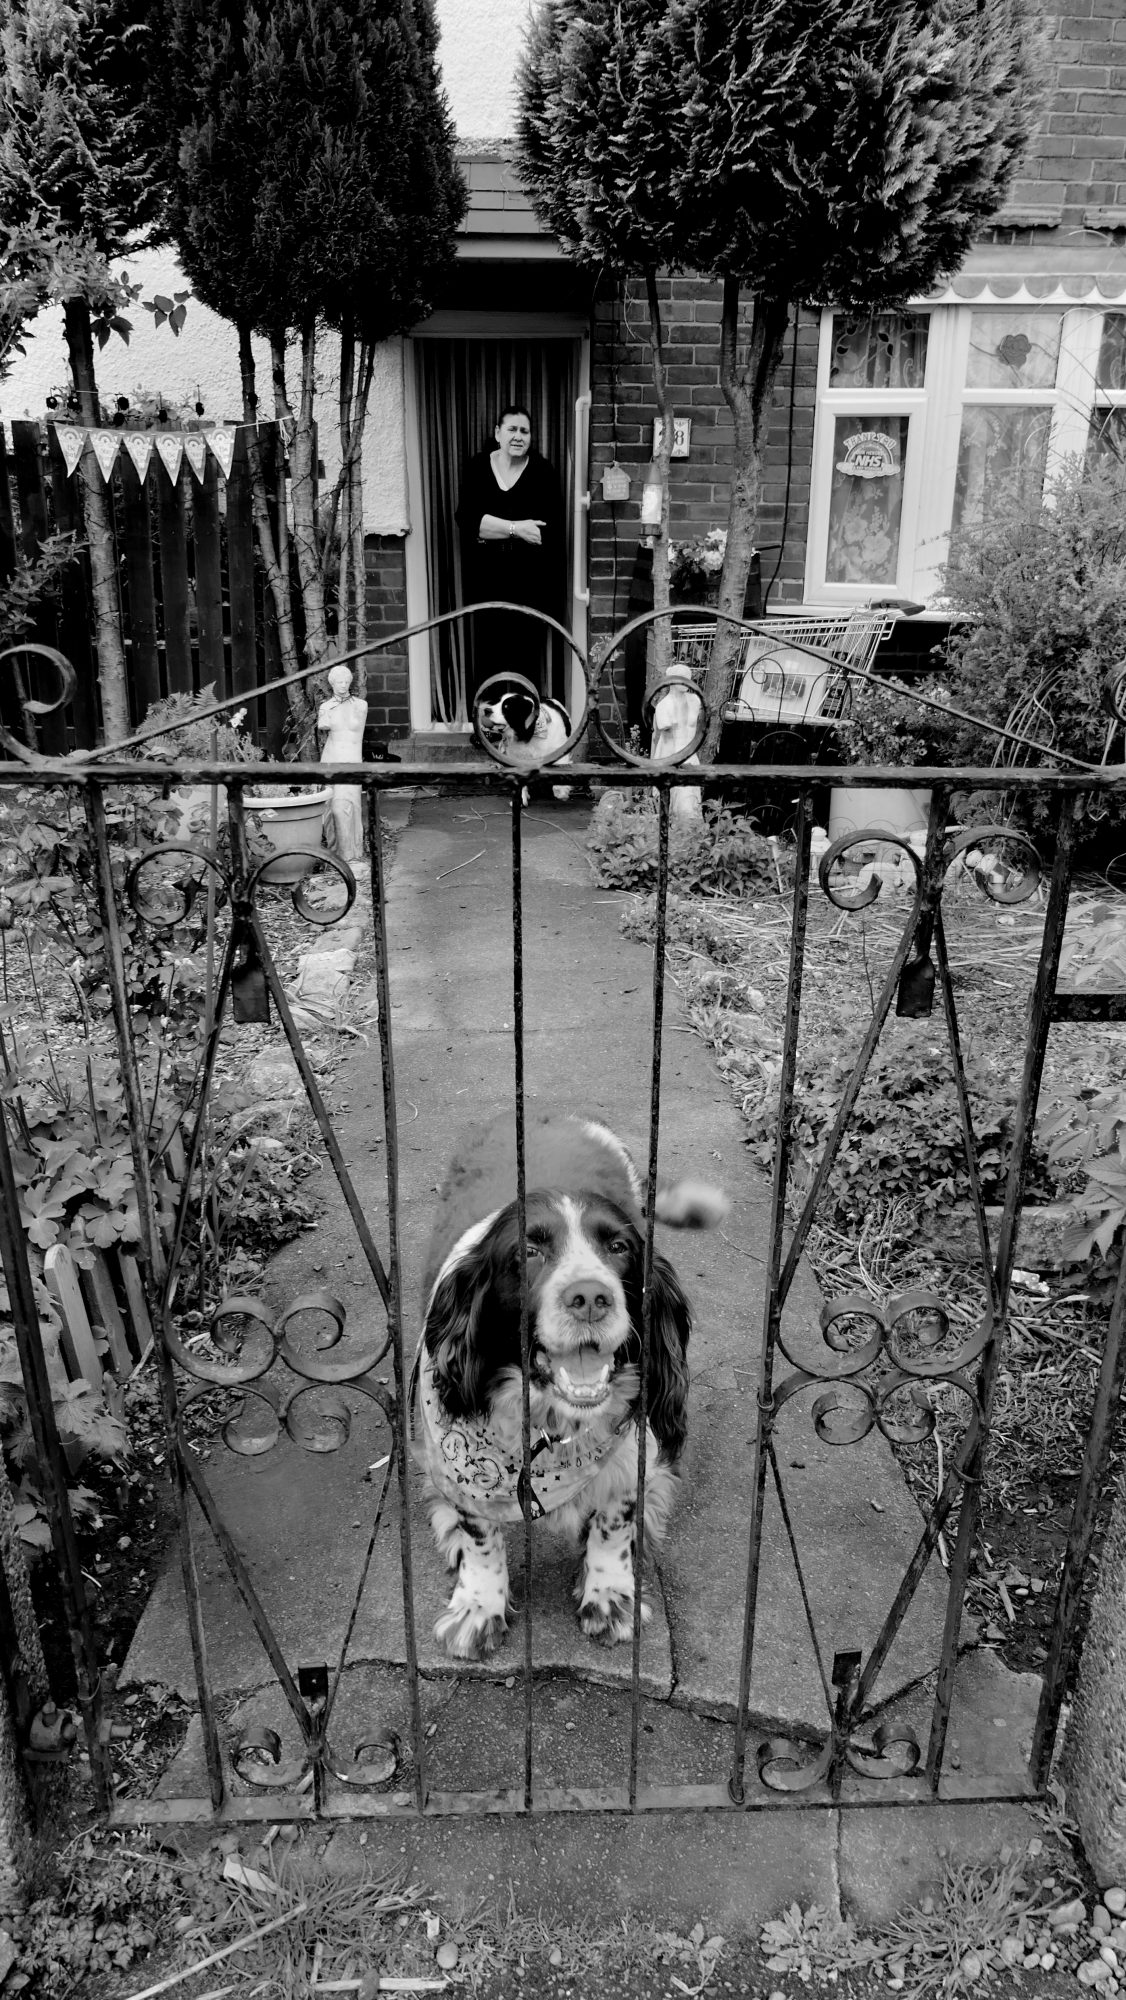 Black & White Photograph. Woman stands in doorway with one dog, whilst another dog sits behind garden gate.